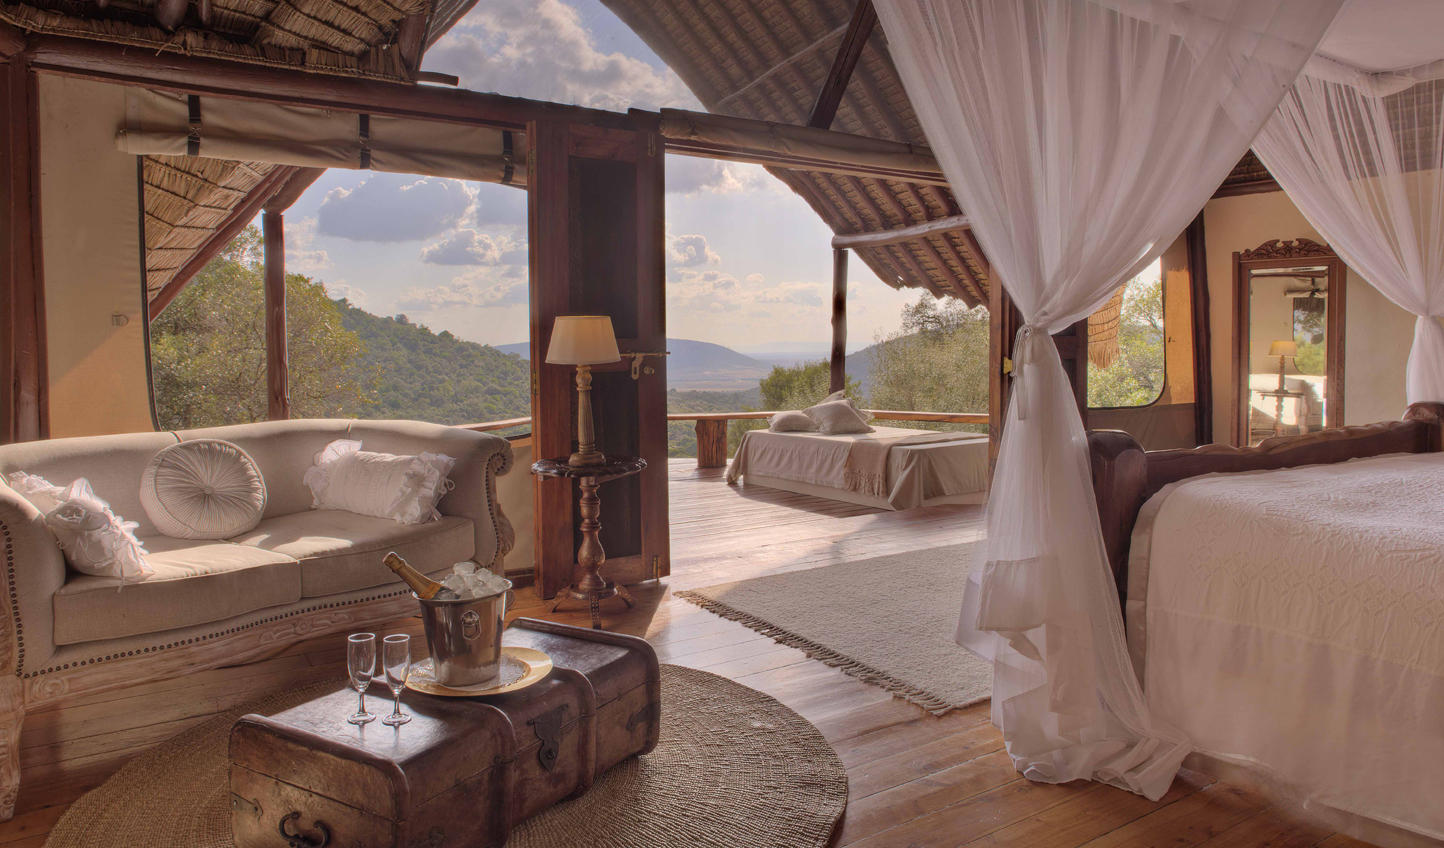 Gaze out over the view from the comfort of your bed